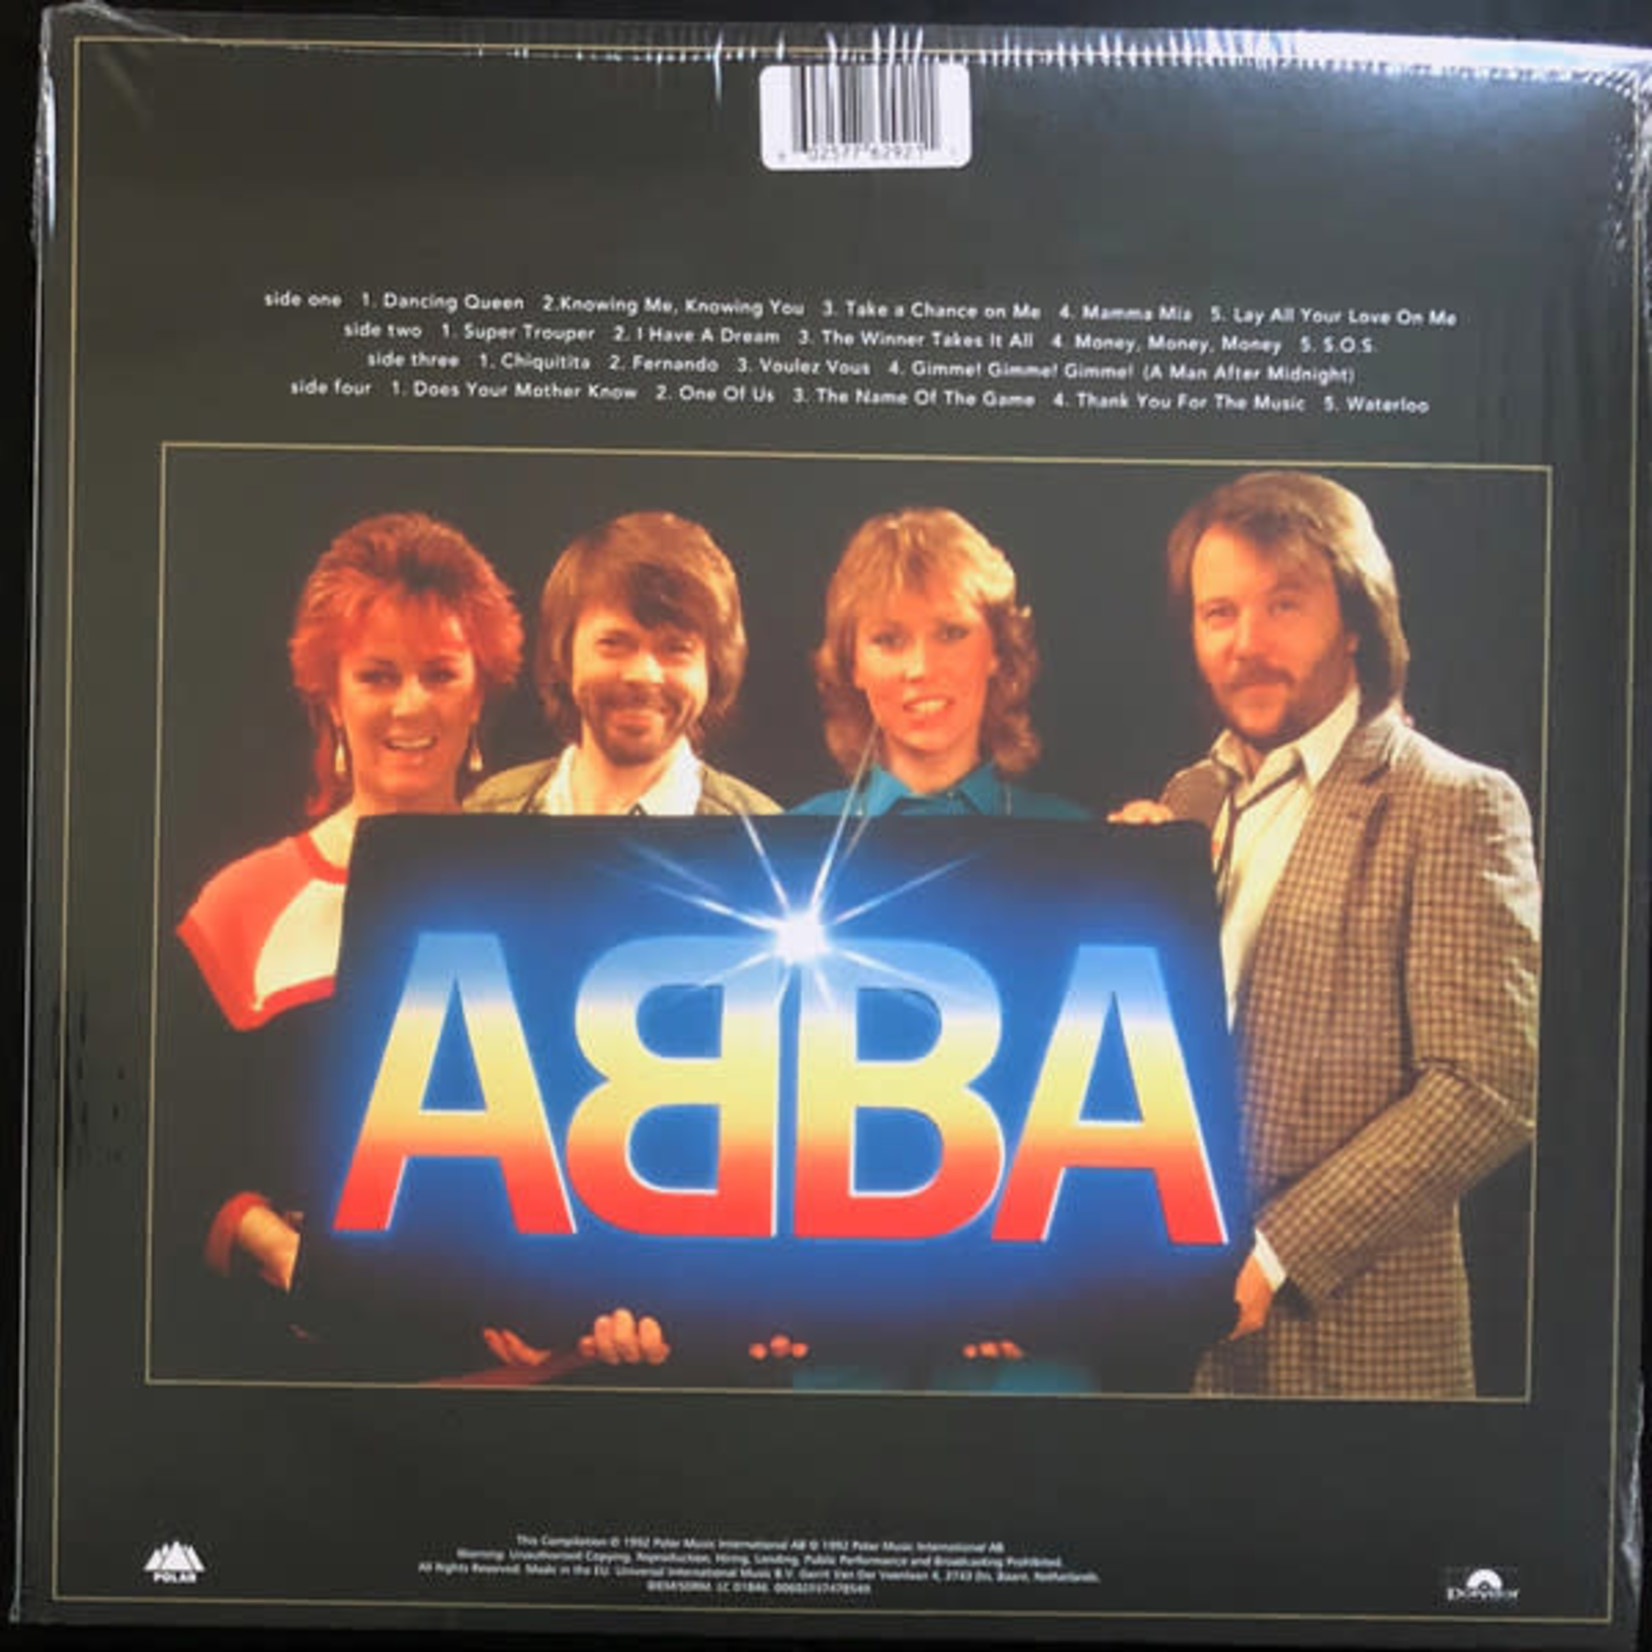 ABBA GOLD: GREATEST HITS (25TH ANNIVERSRAY) (LIMITED EDITION GOLD VINYL)